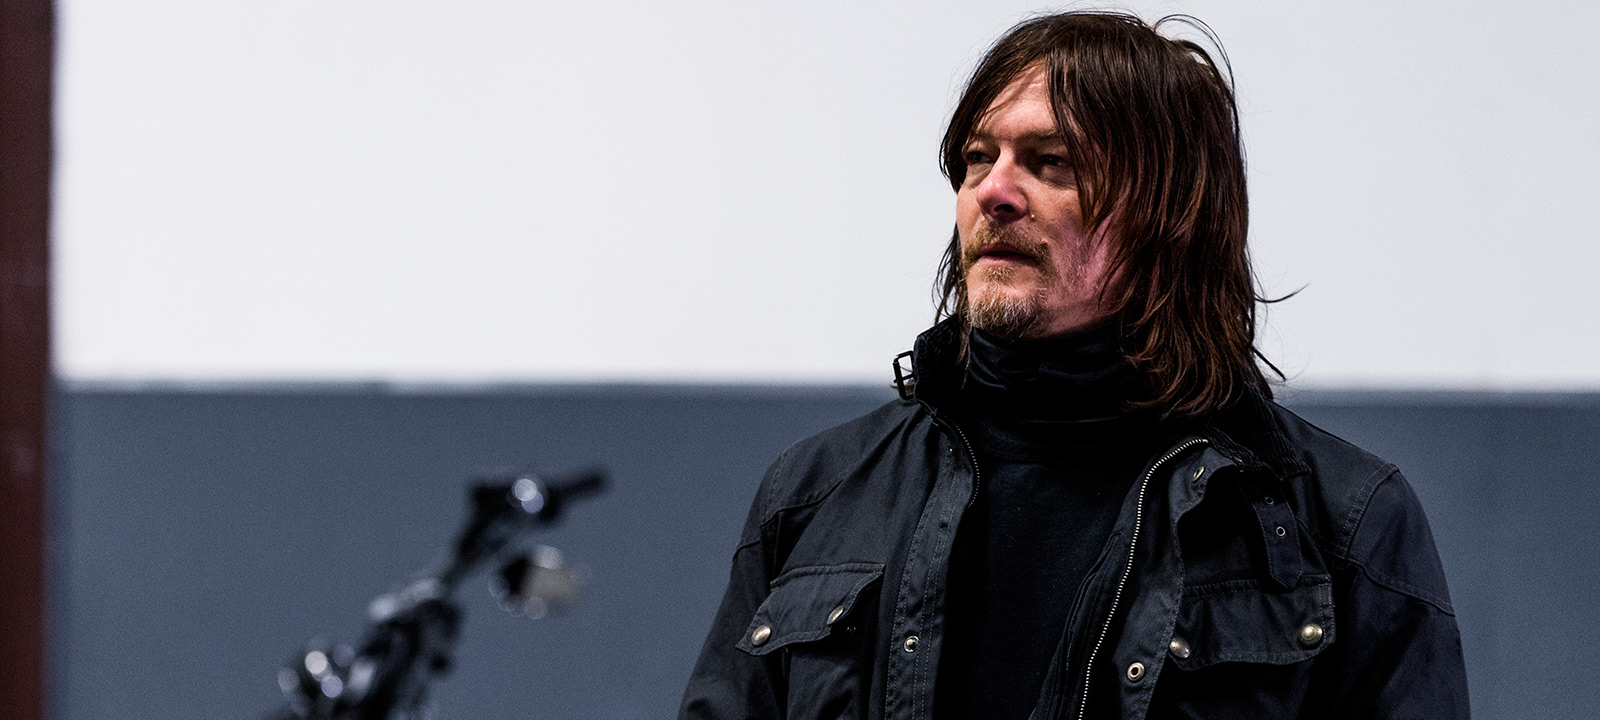 ride–206-norman-reedus-qa-800×600